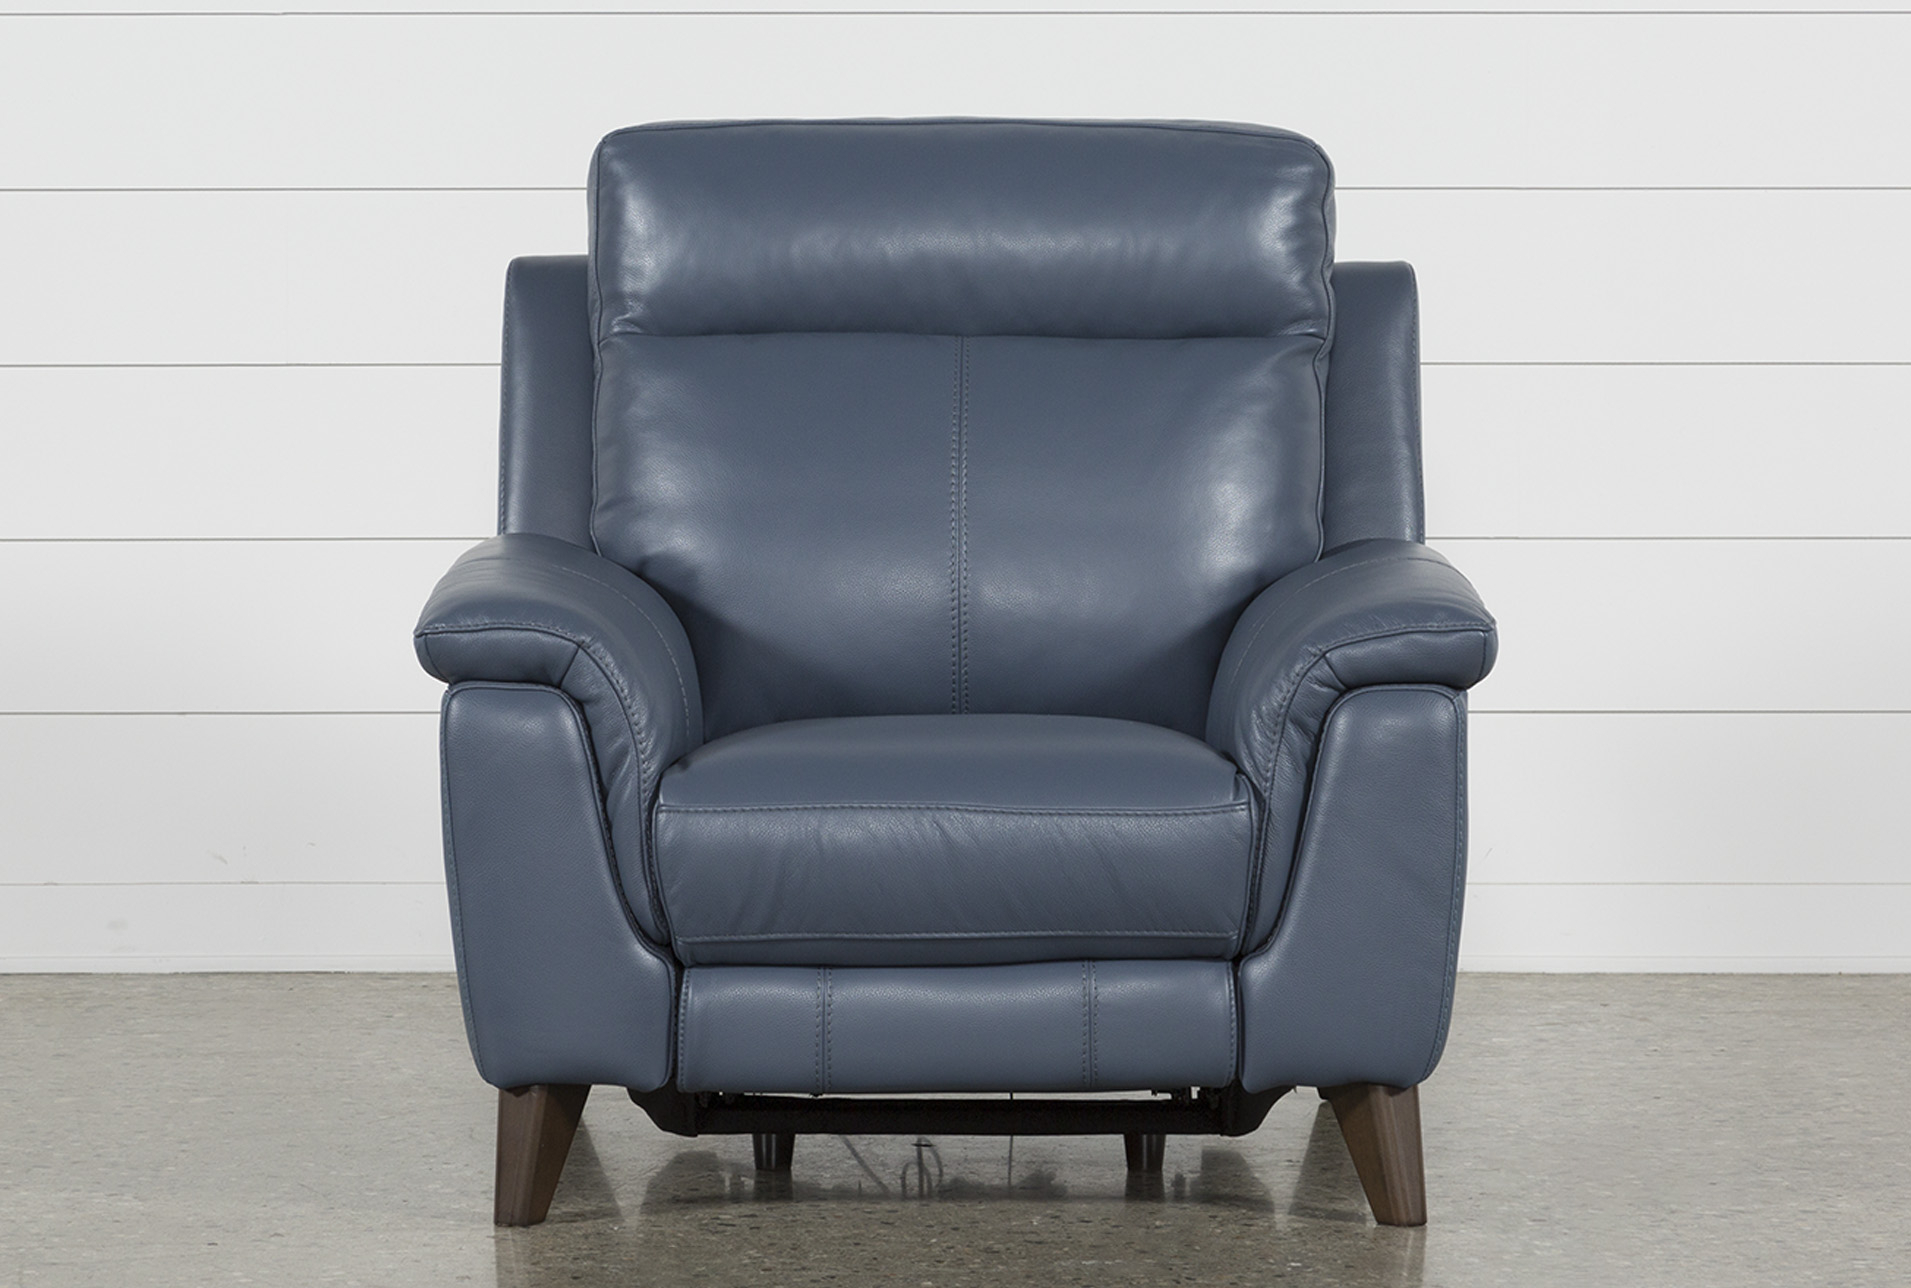 Moana Blue Leather Power Reclining Chair With Usb In 2018 | Products With Moana Blue Leather Power Reclining Sofa Chairs With Usb (View 2 of 20)